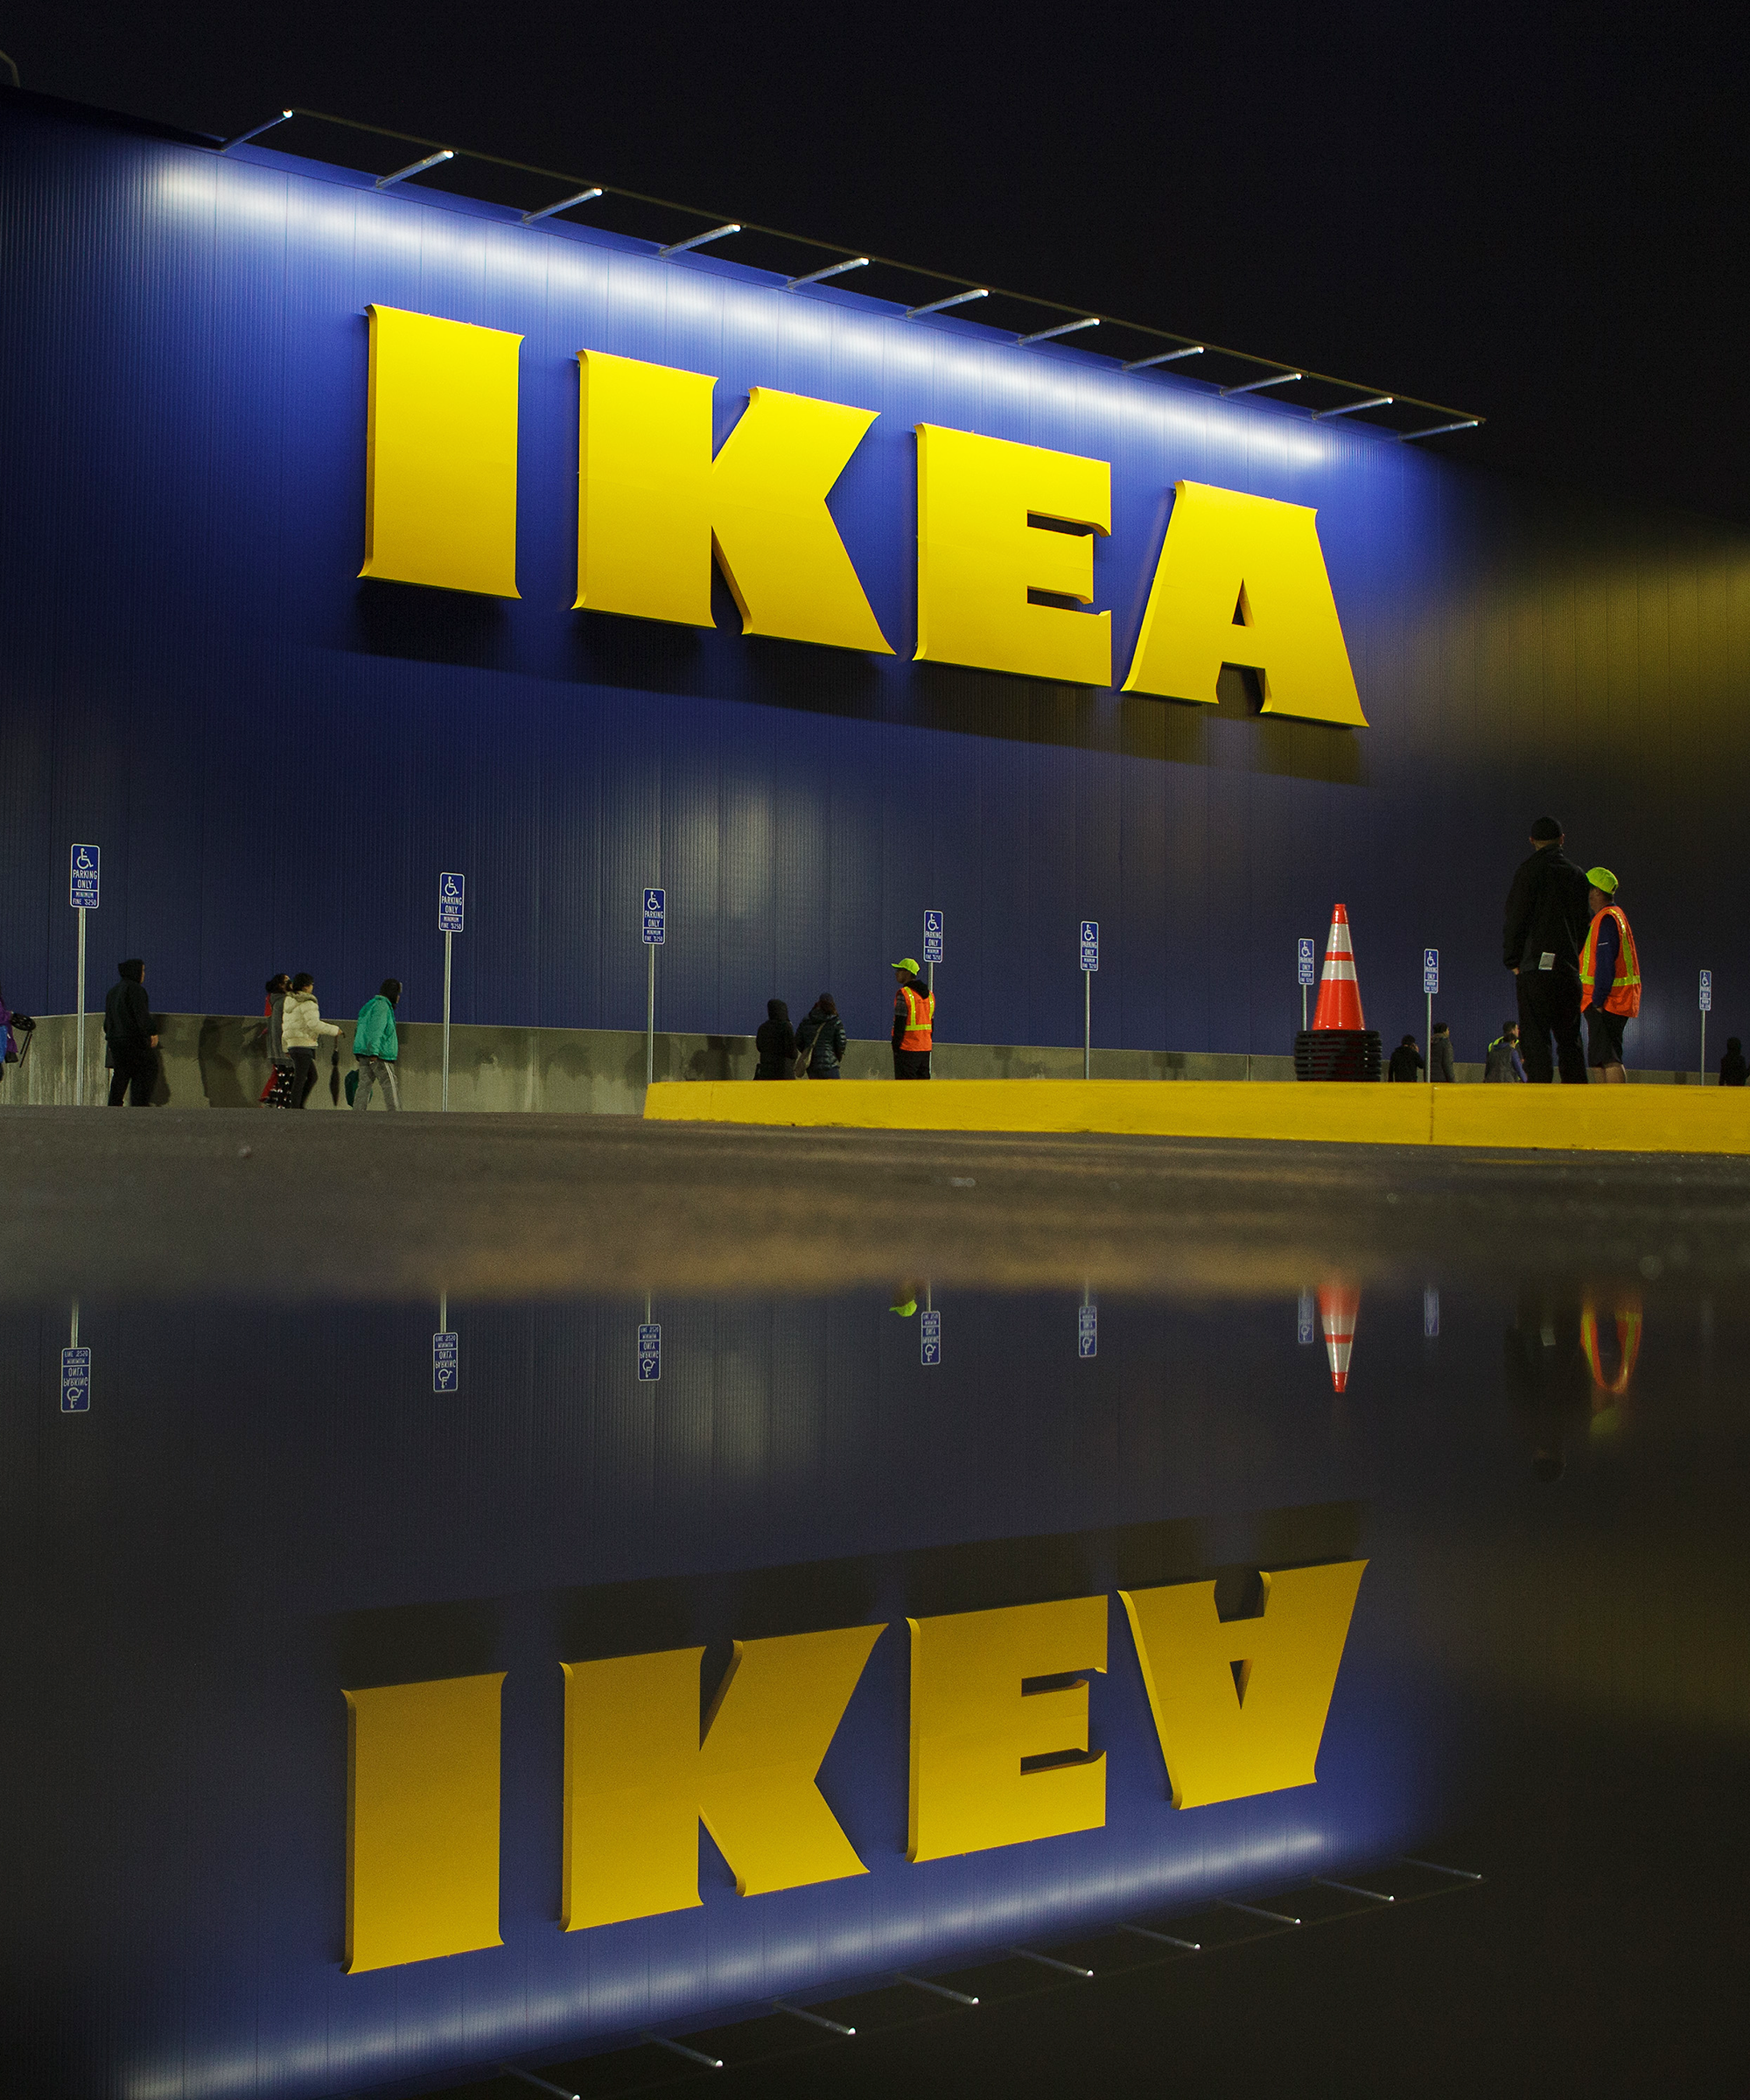 Ikea sniglar crib sold out where to buy cheap cribs gumiabroncs Choice Image